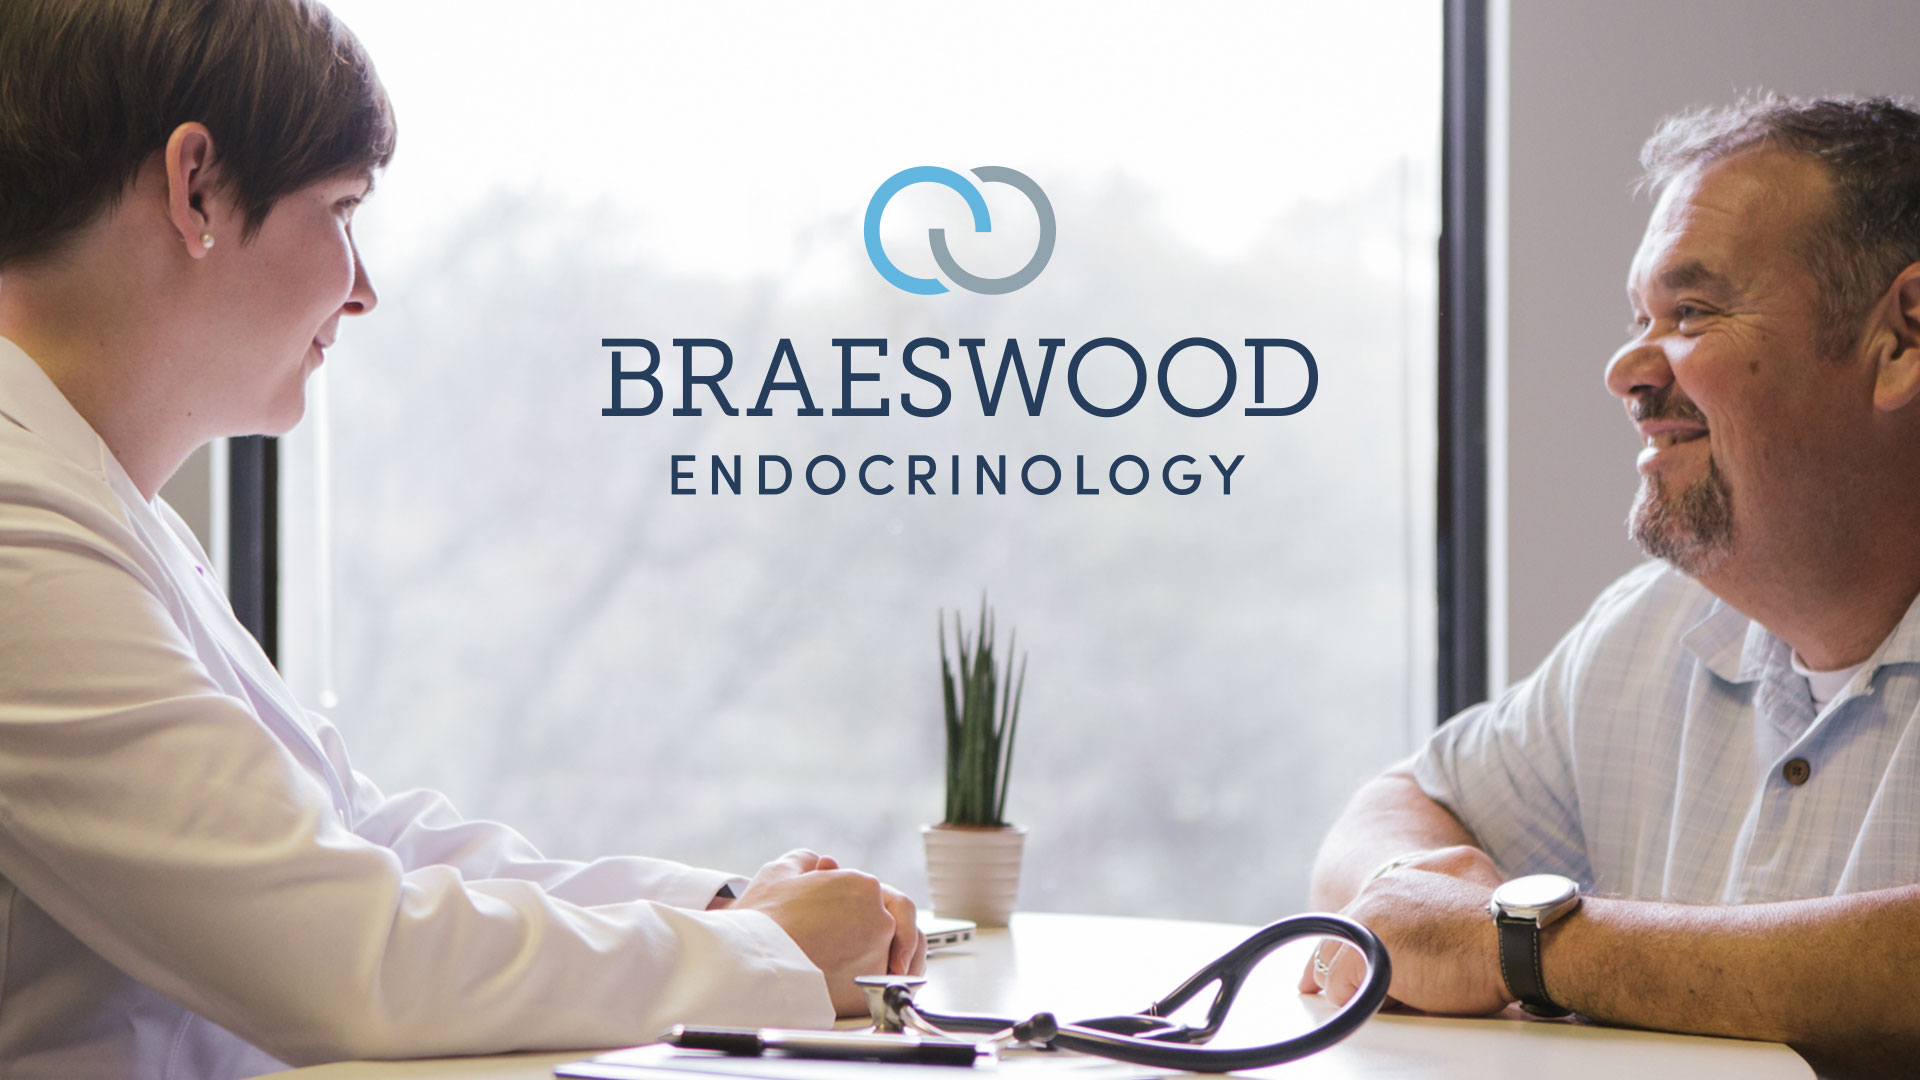 Braeswood Endocrinology medical practice branding logo design